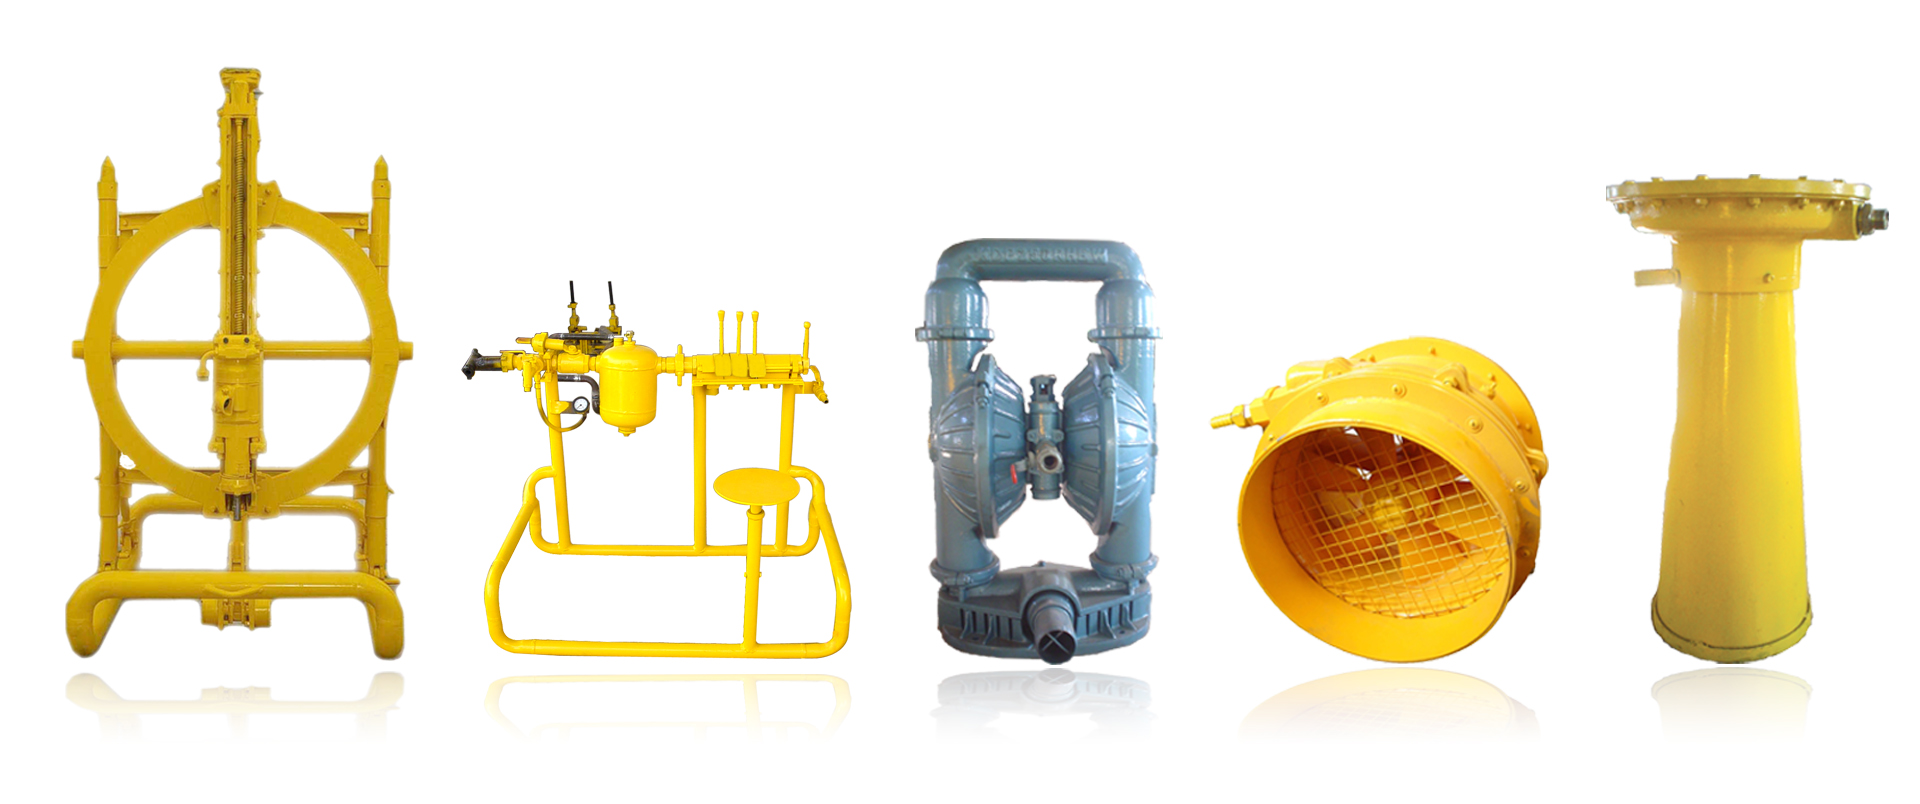 Underground Mining Equipment